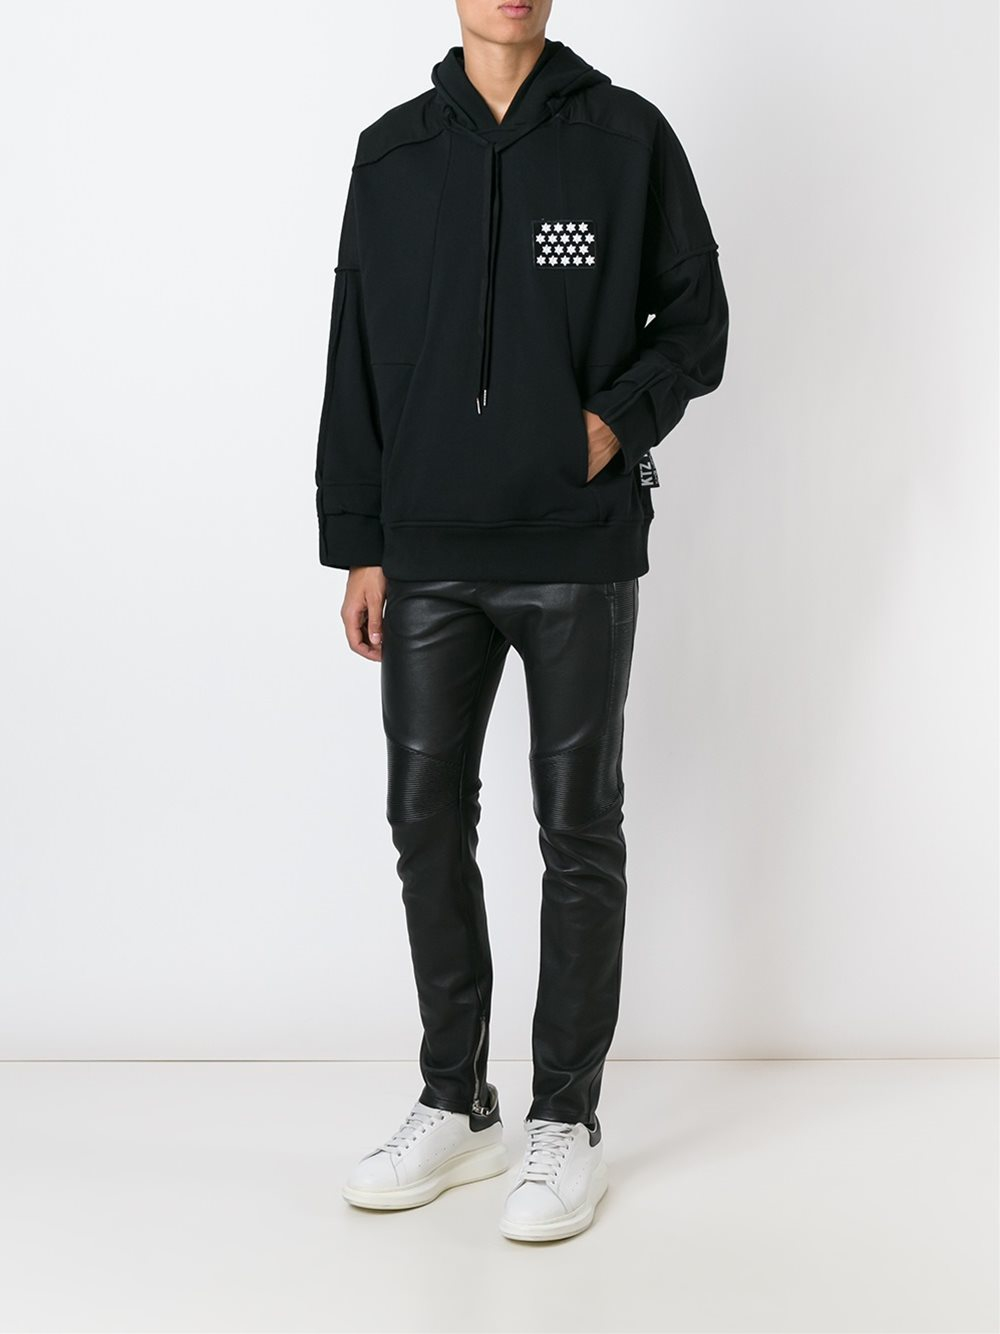 Ktz Chest Patch Hoodie In Black For Men Lyst